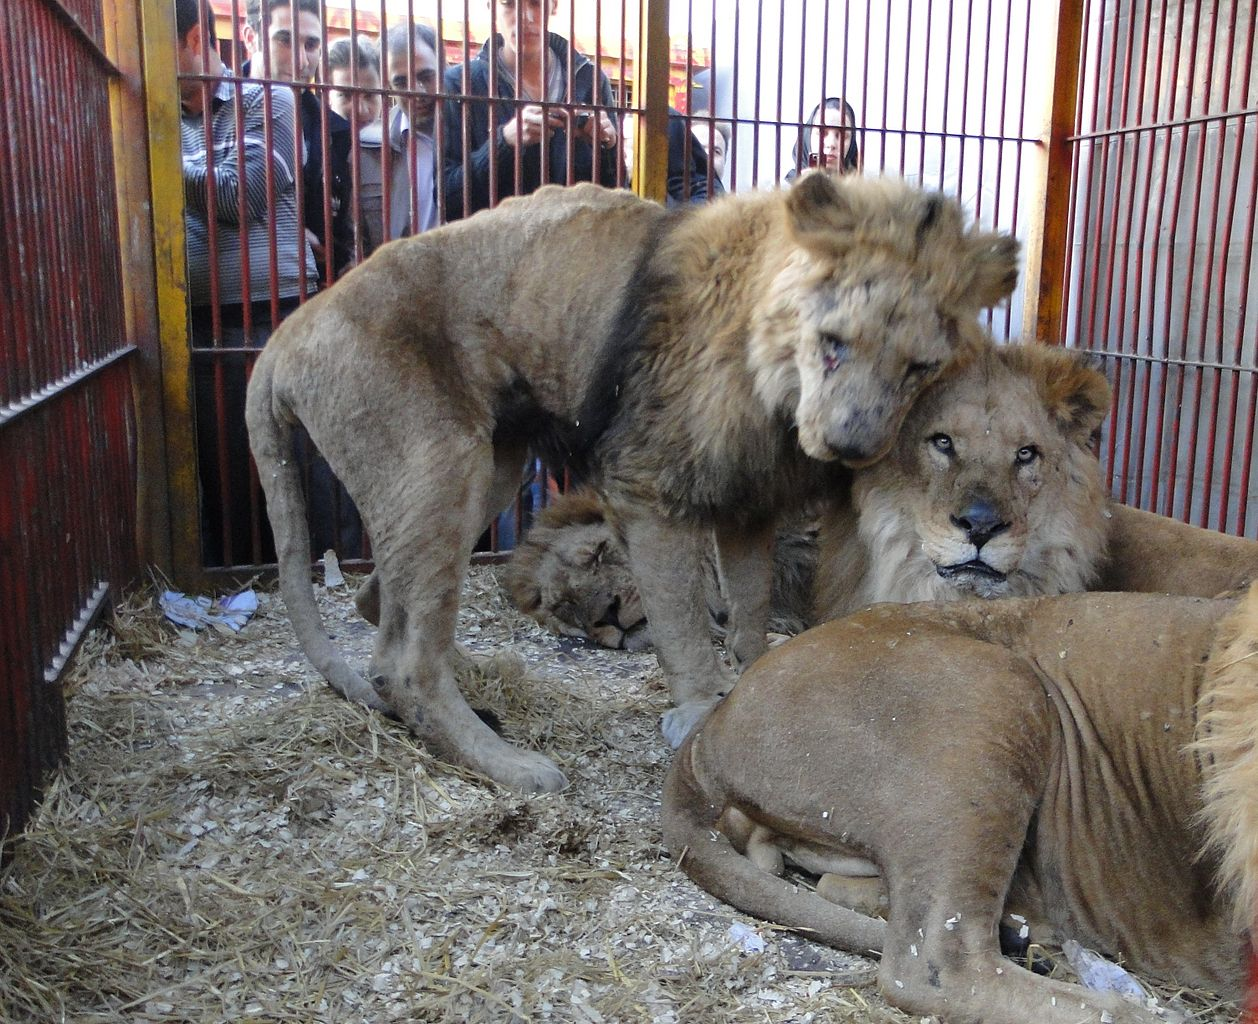 the conditions of the lions are similar to these lions in a cage. work by فلورانس Wikimedia Comons